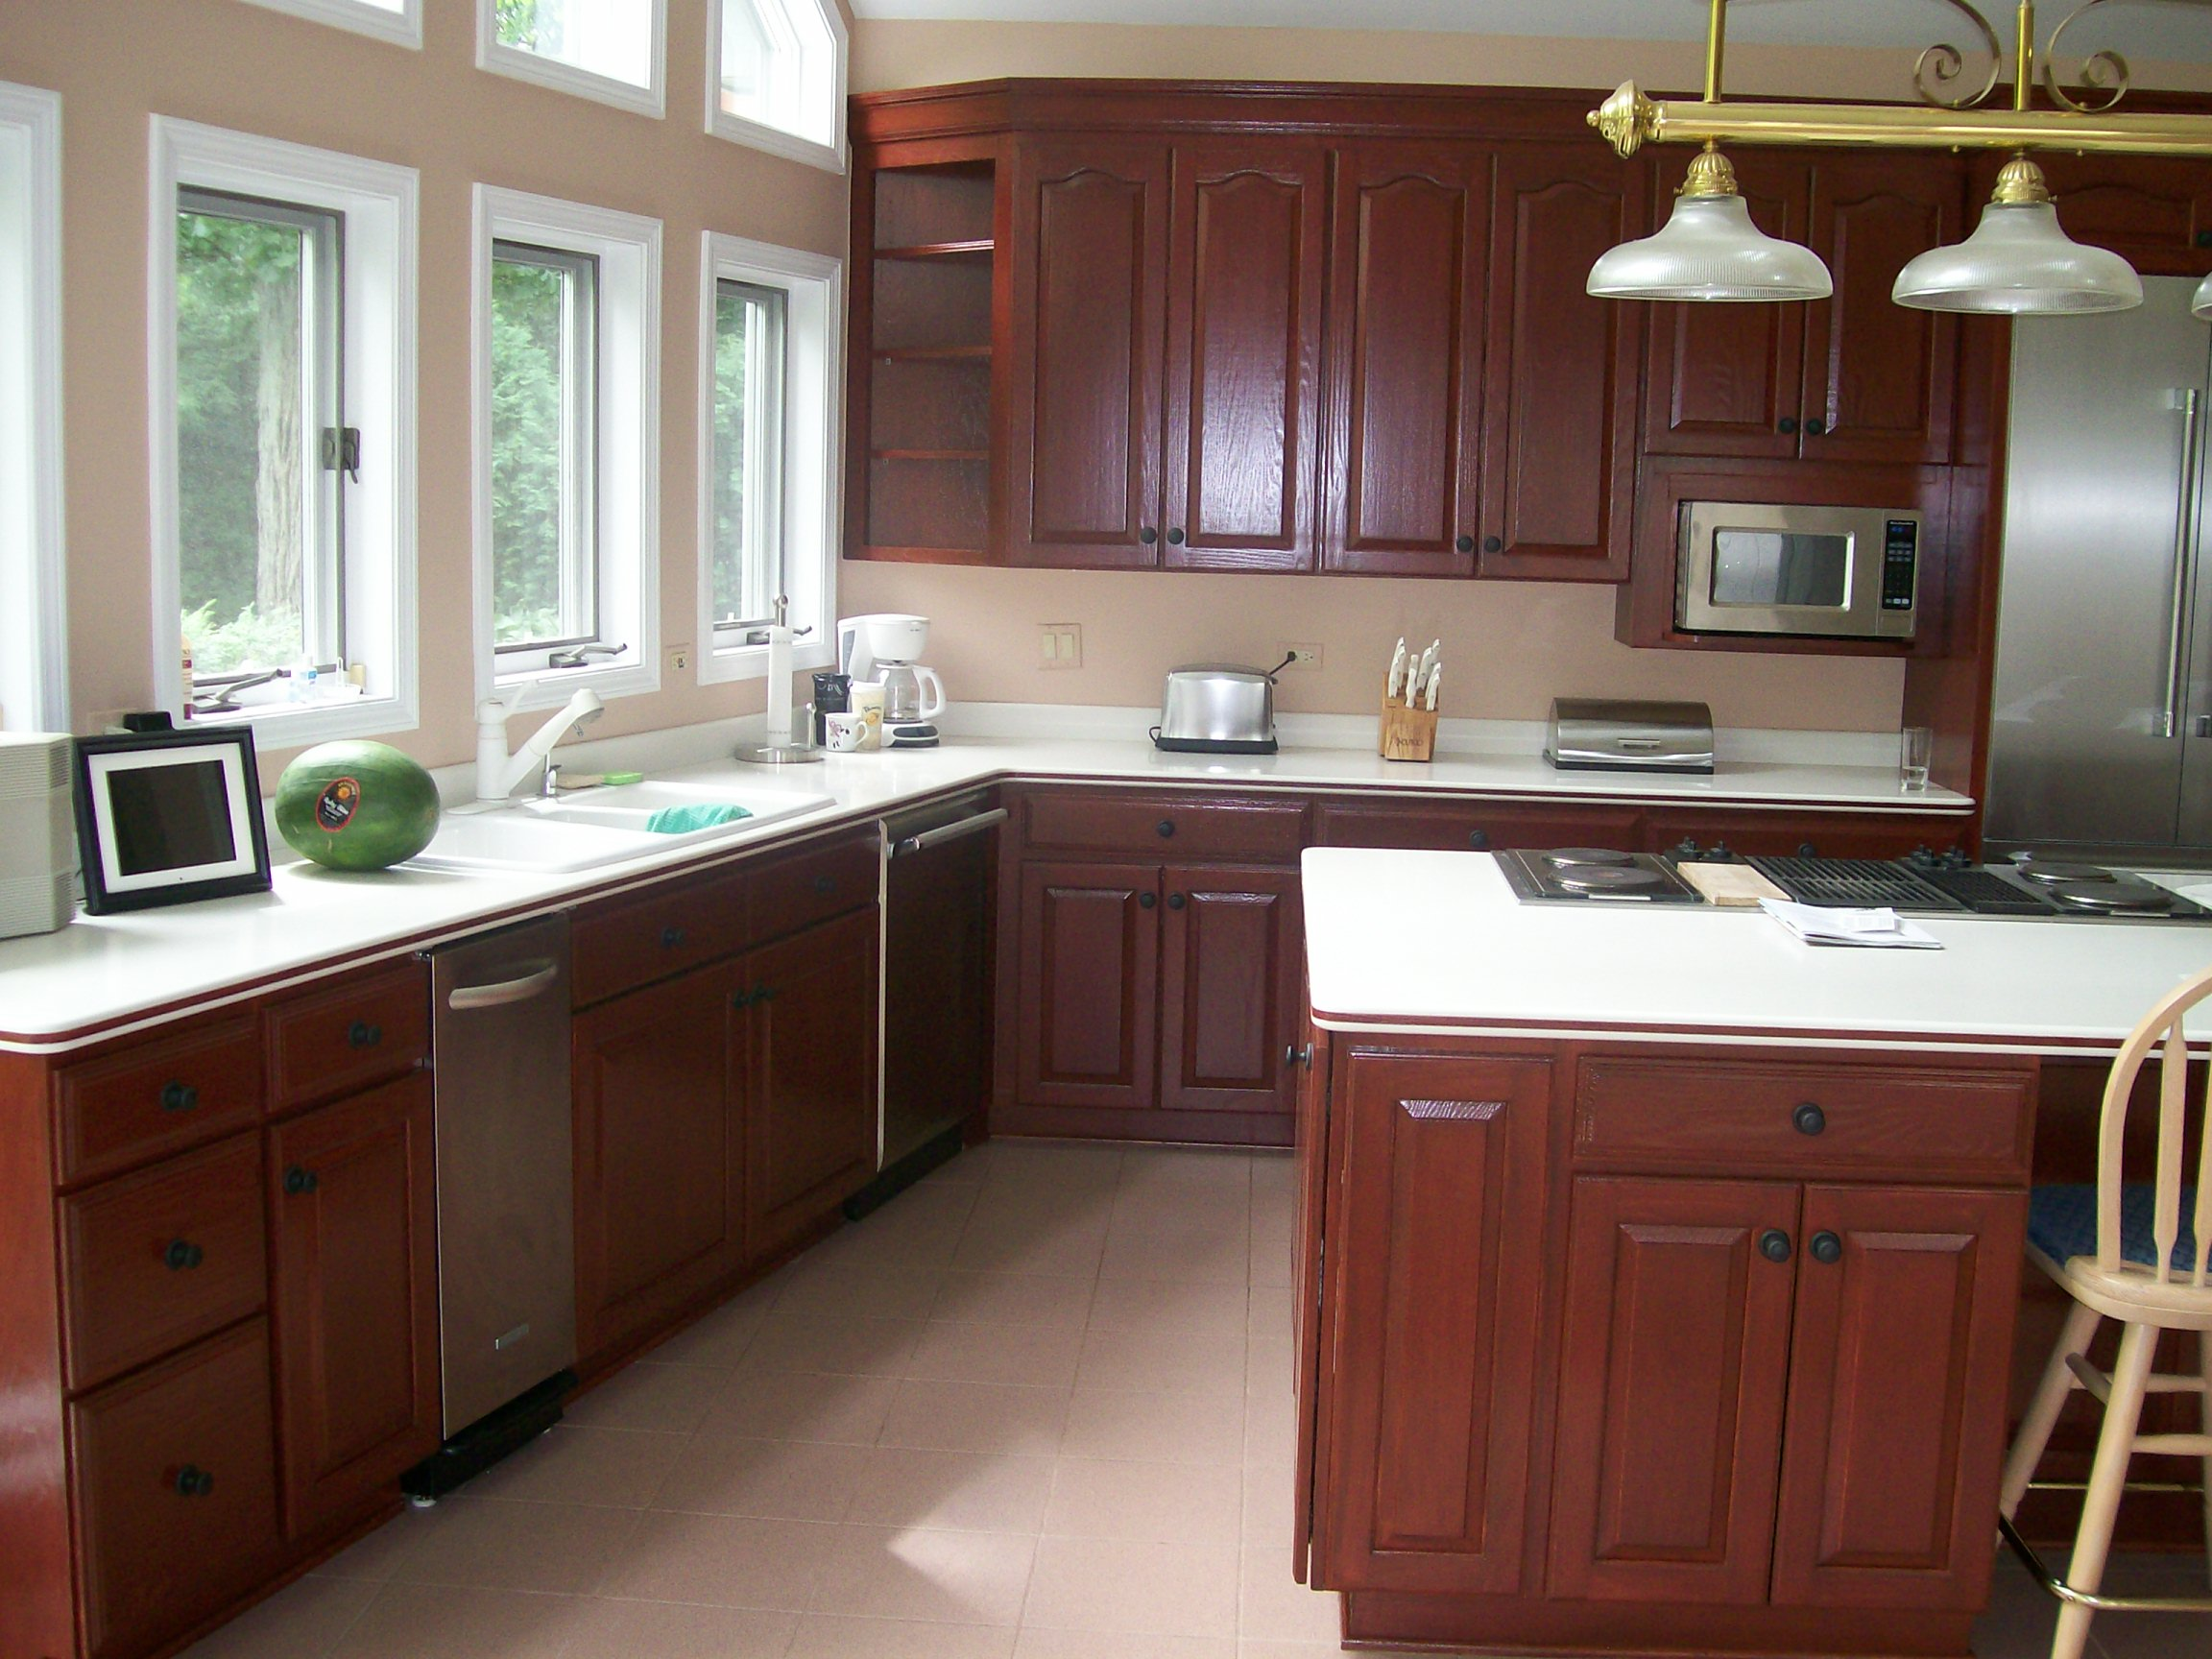 How To Paint Kitchen Cabinets In Mobile Home Painting Mobile Home Cabinets Home Painting Ideas